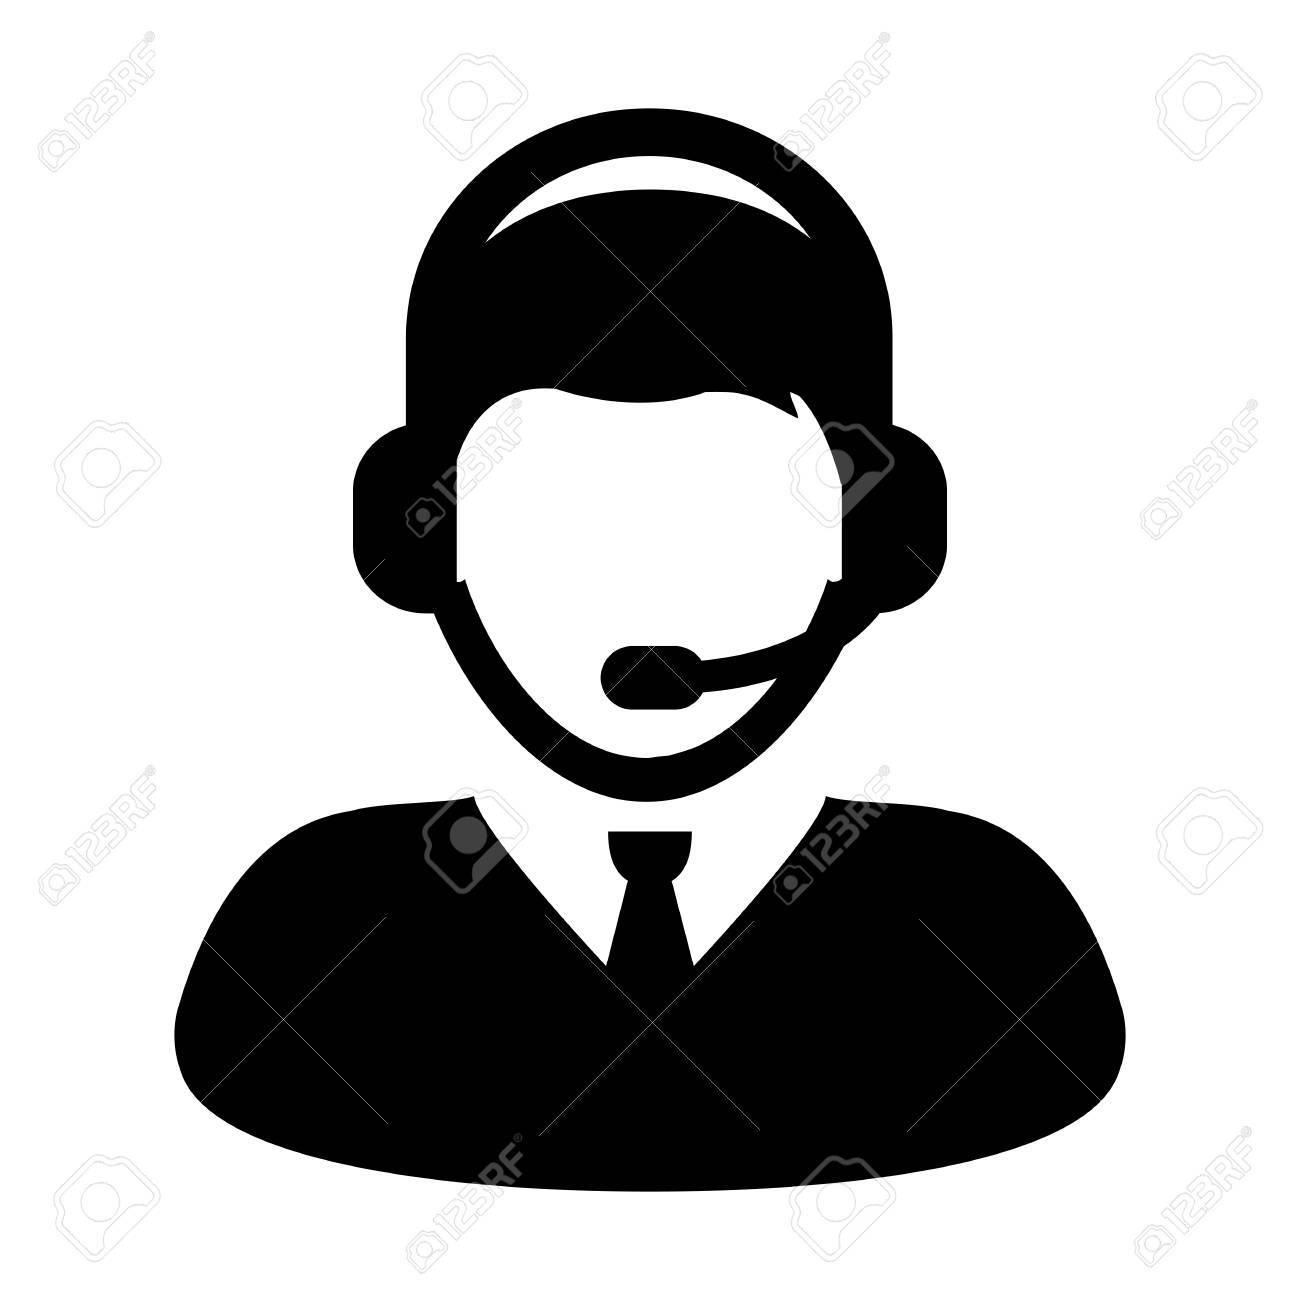 Awesome Customer Service, Support, Help Desk, Call Center Vector Icon Stock Vector    68324173 Nice Ideas